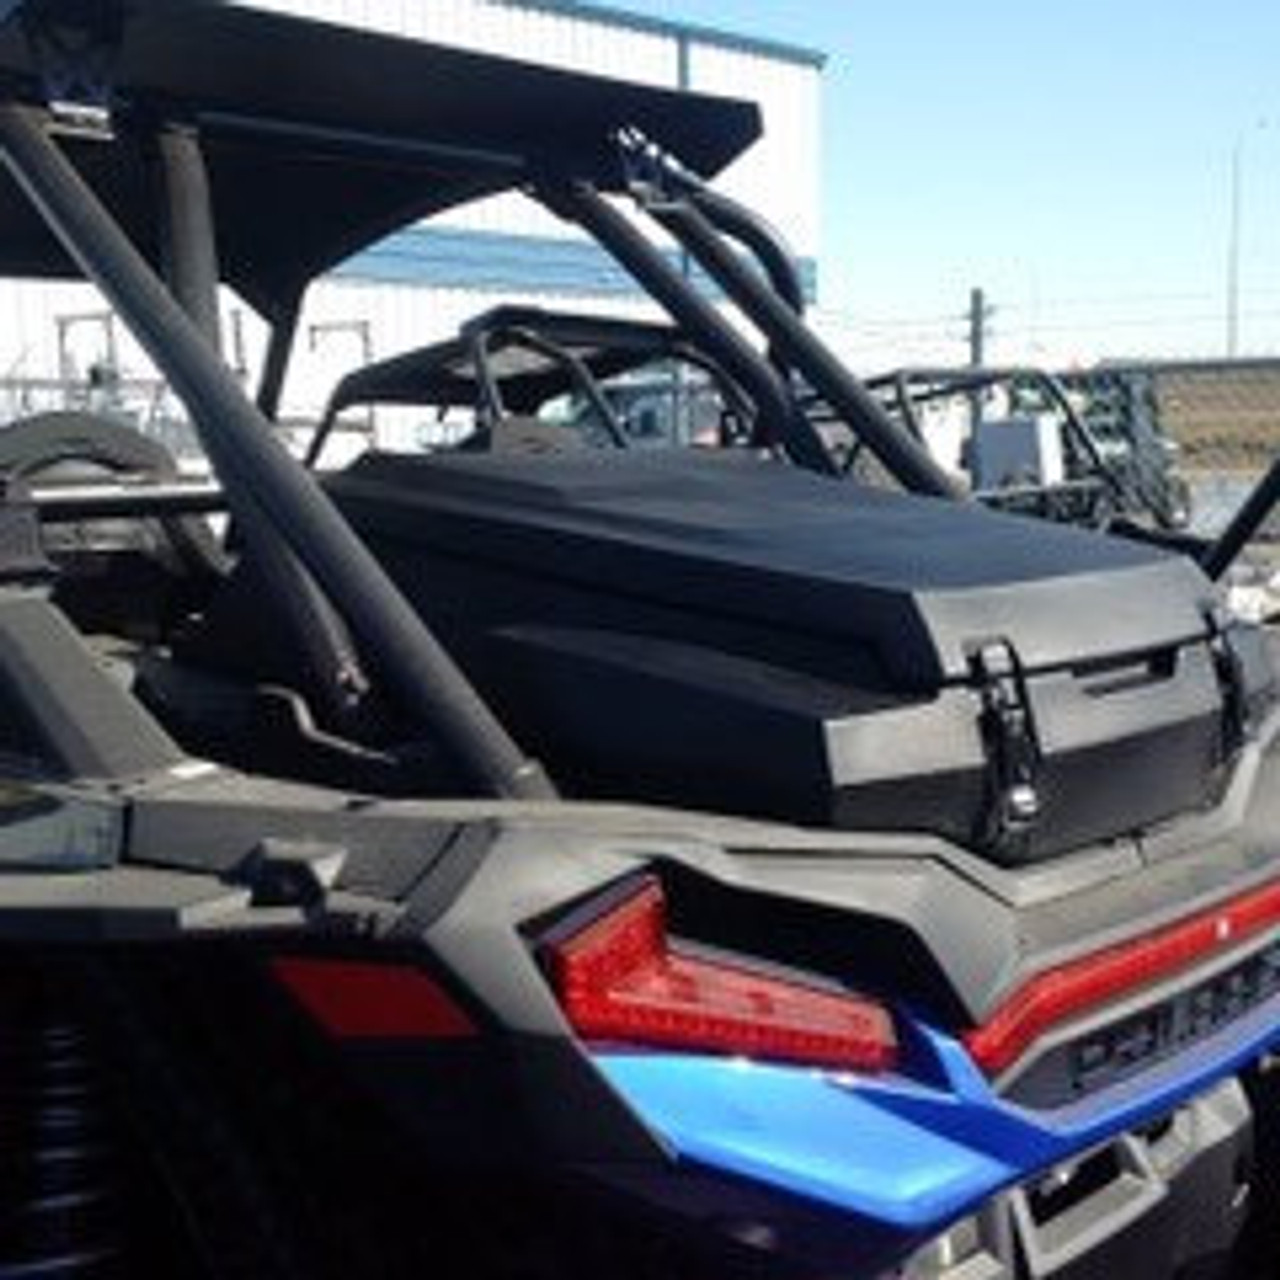 Jemco XP II 2019+RZR XP® 1000, Dynamix, High Lifter, Turbo & Turbo S2 & 4 Seaters